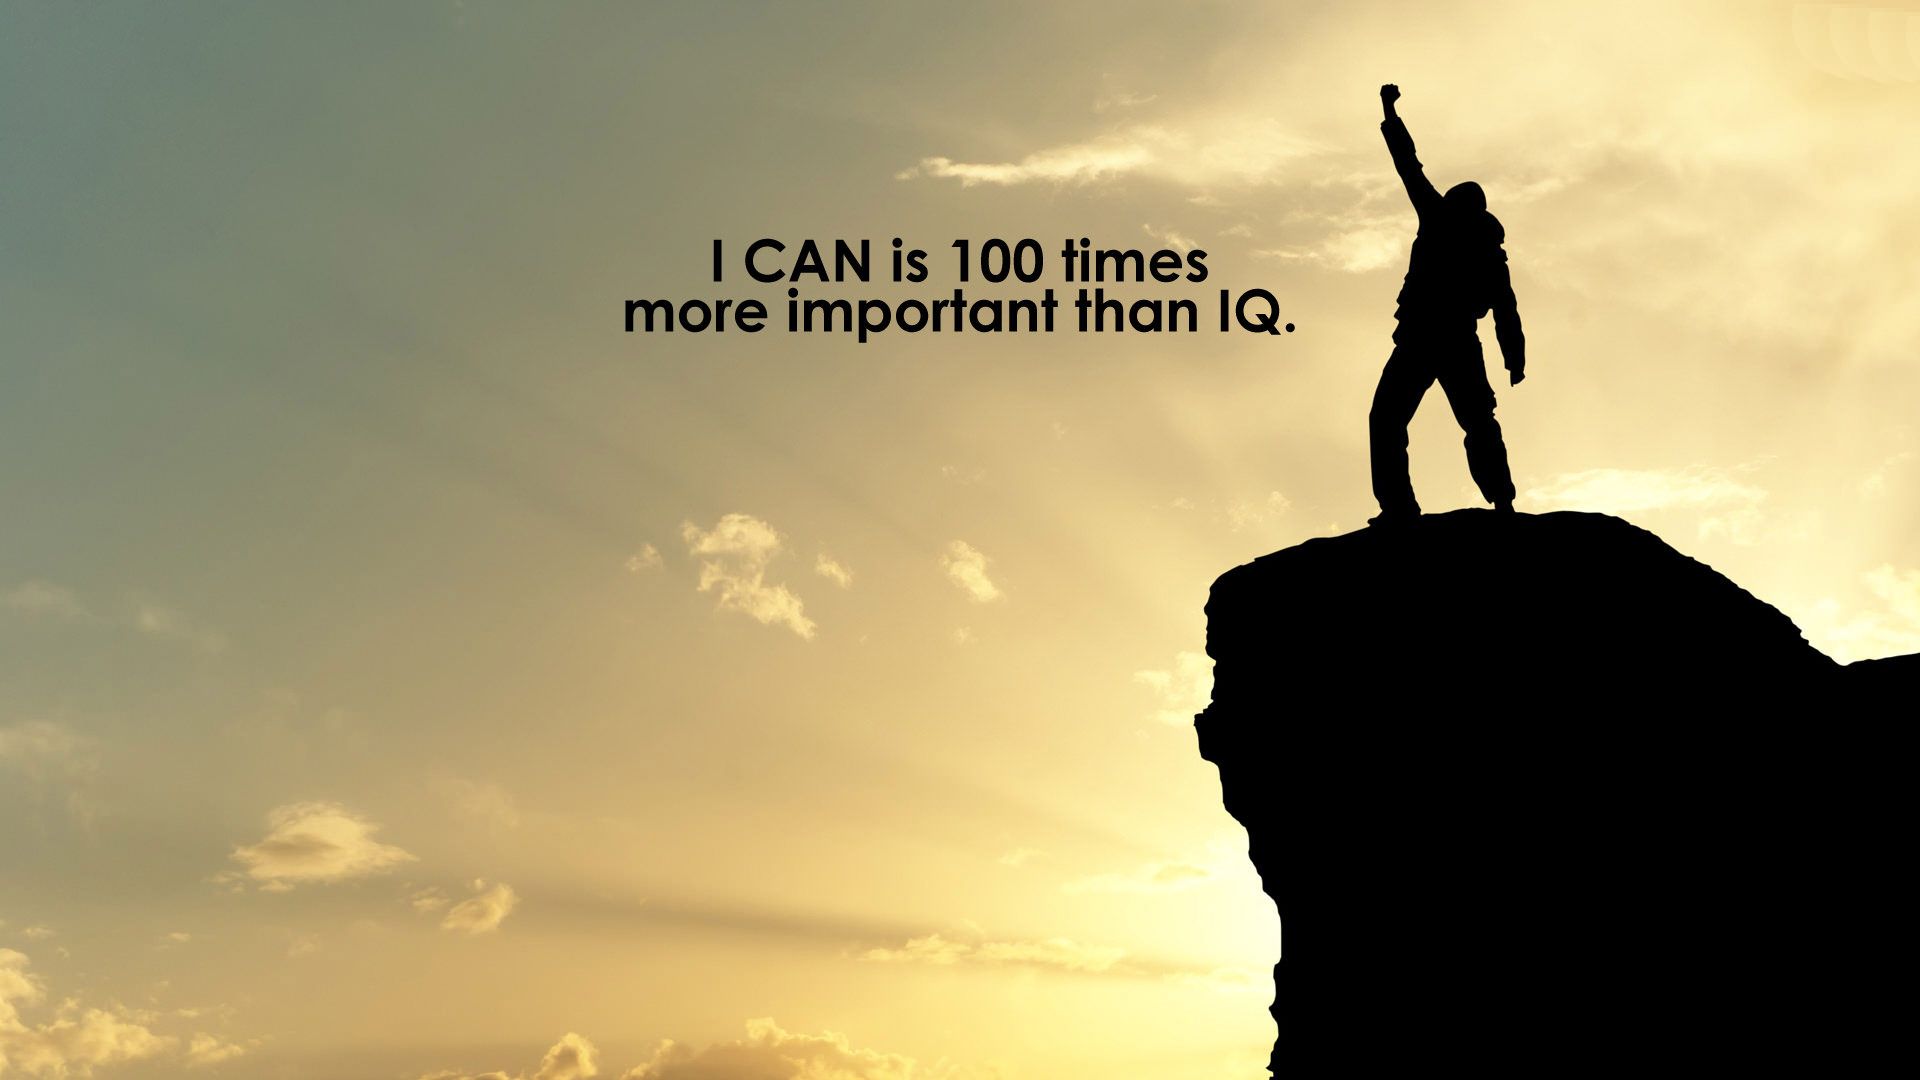 HD Motivational Quotes Wallpapers